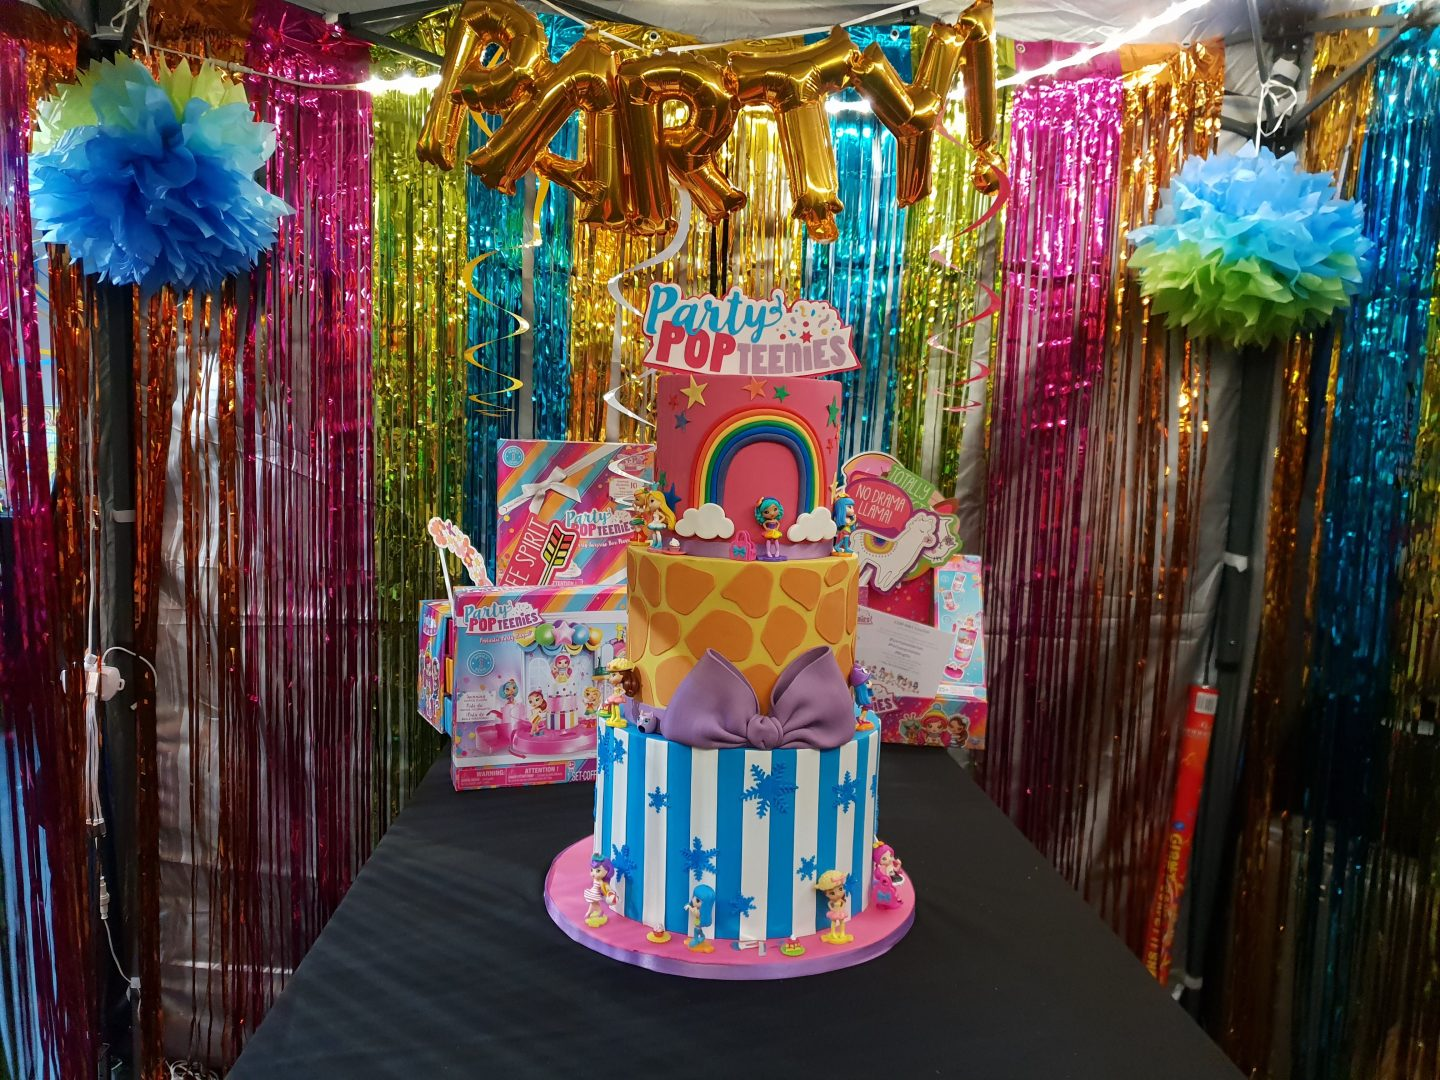 Party Pop Teenies cake at BlogOn Toys